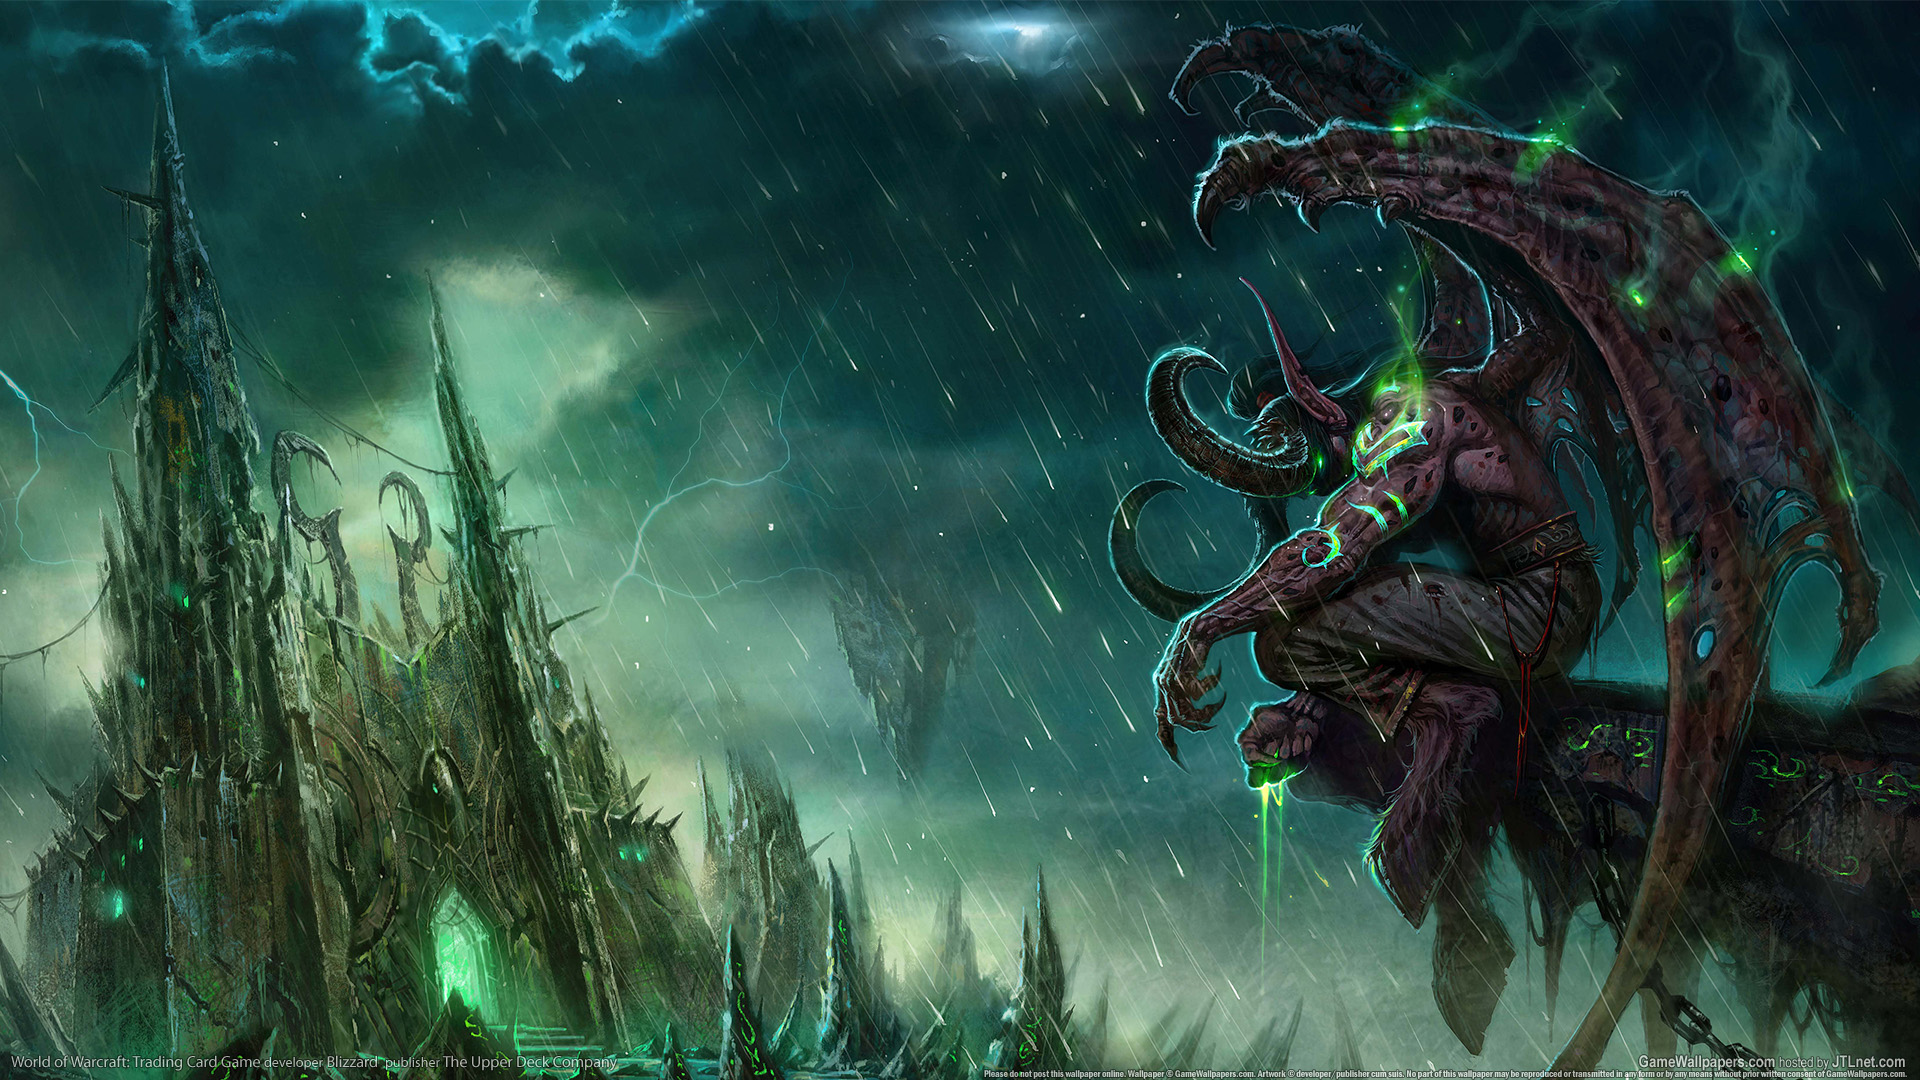 World Of Warcraft Wallpaper Wallpape Hd Game 1920x1080px | Concept